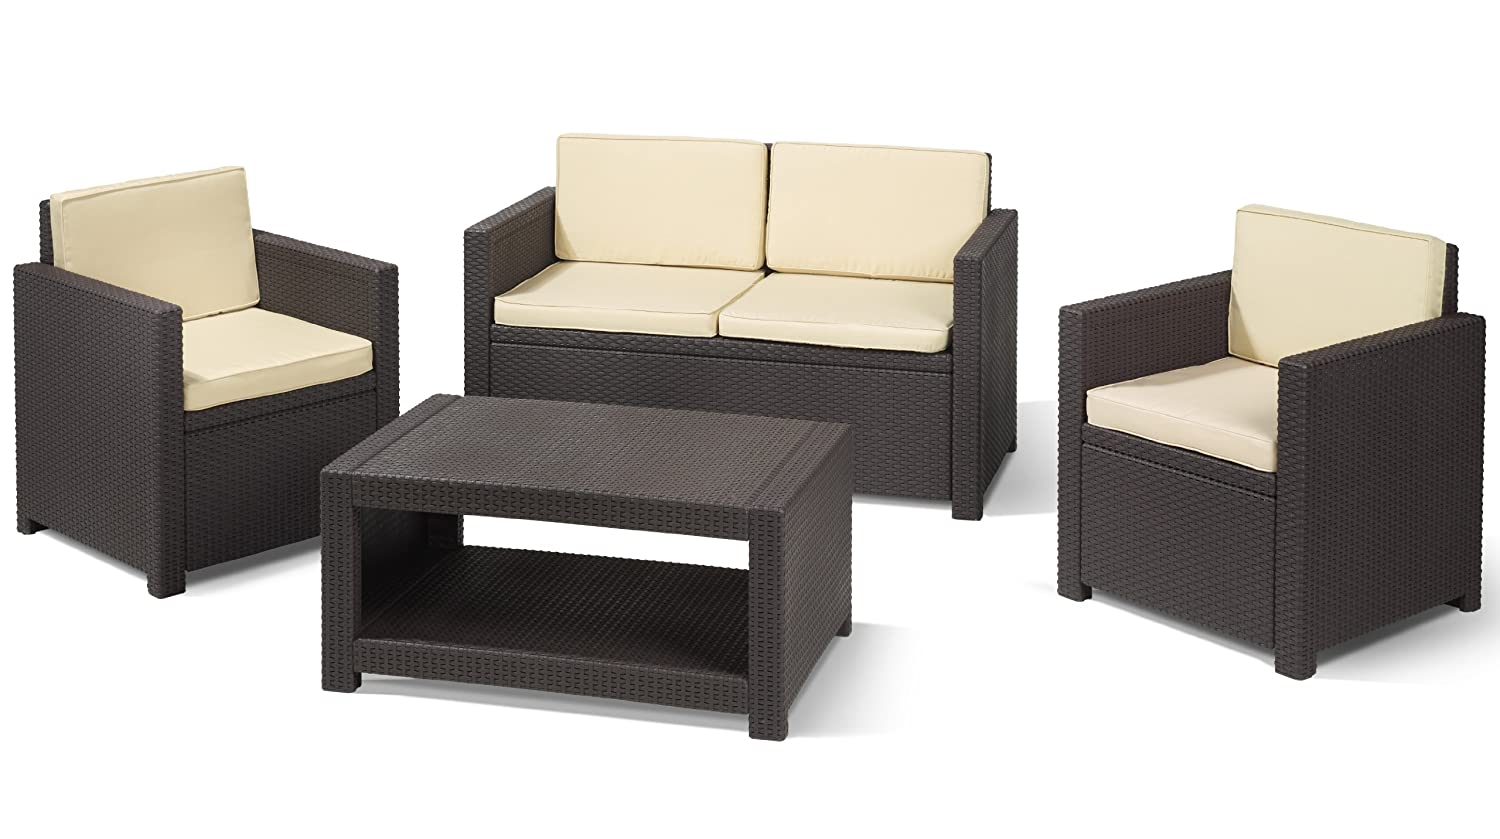 allibert m bel lounge set monaco braun g nstig kaufen. Black Bedroom Furniture Sets. Home Design Ideas